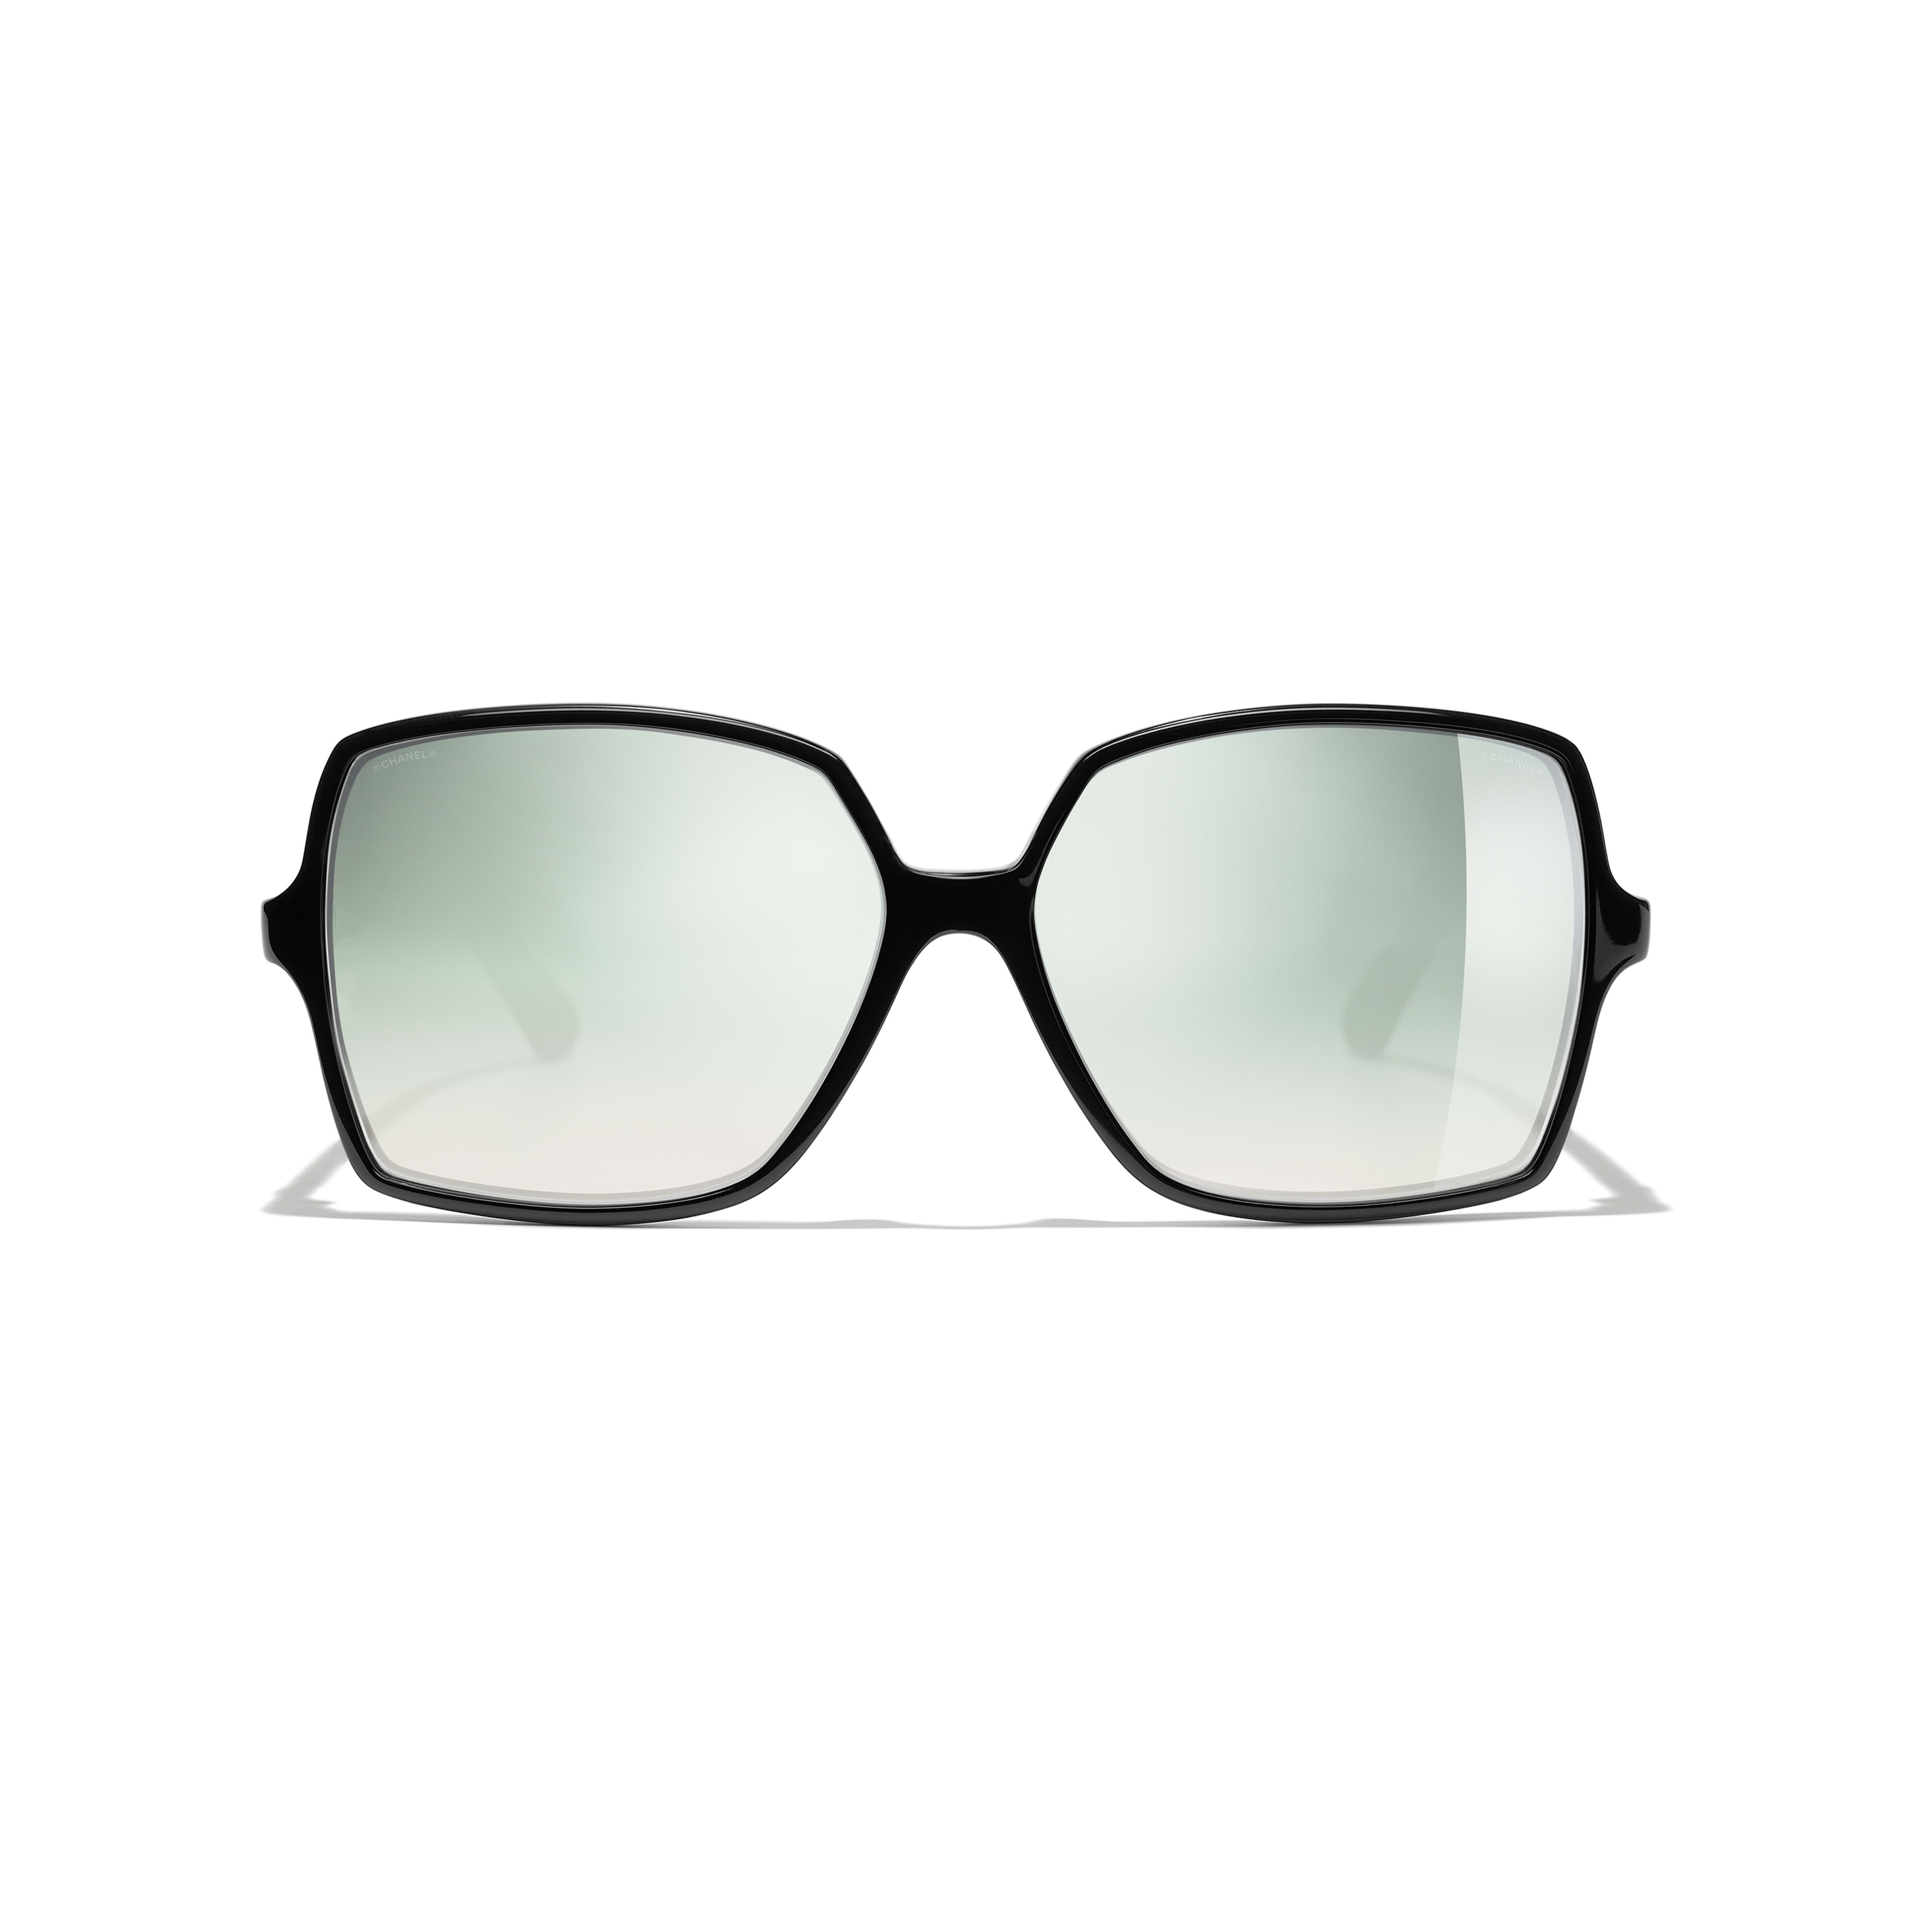 Square Sunglasses - Black - Acetate, Wood & Rubber - Alternative view - see full sized version